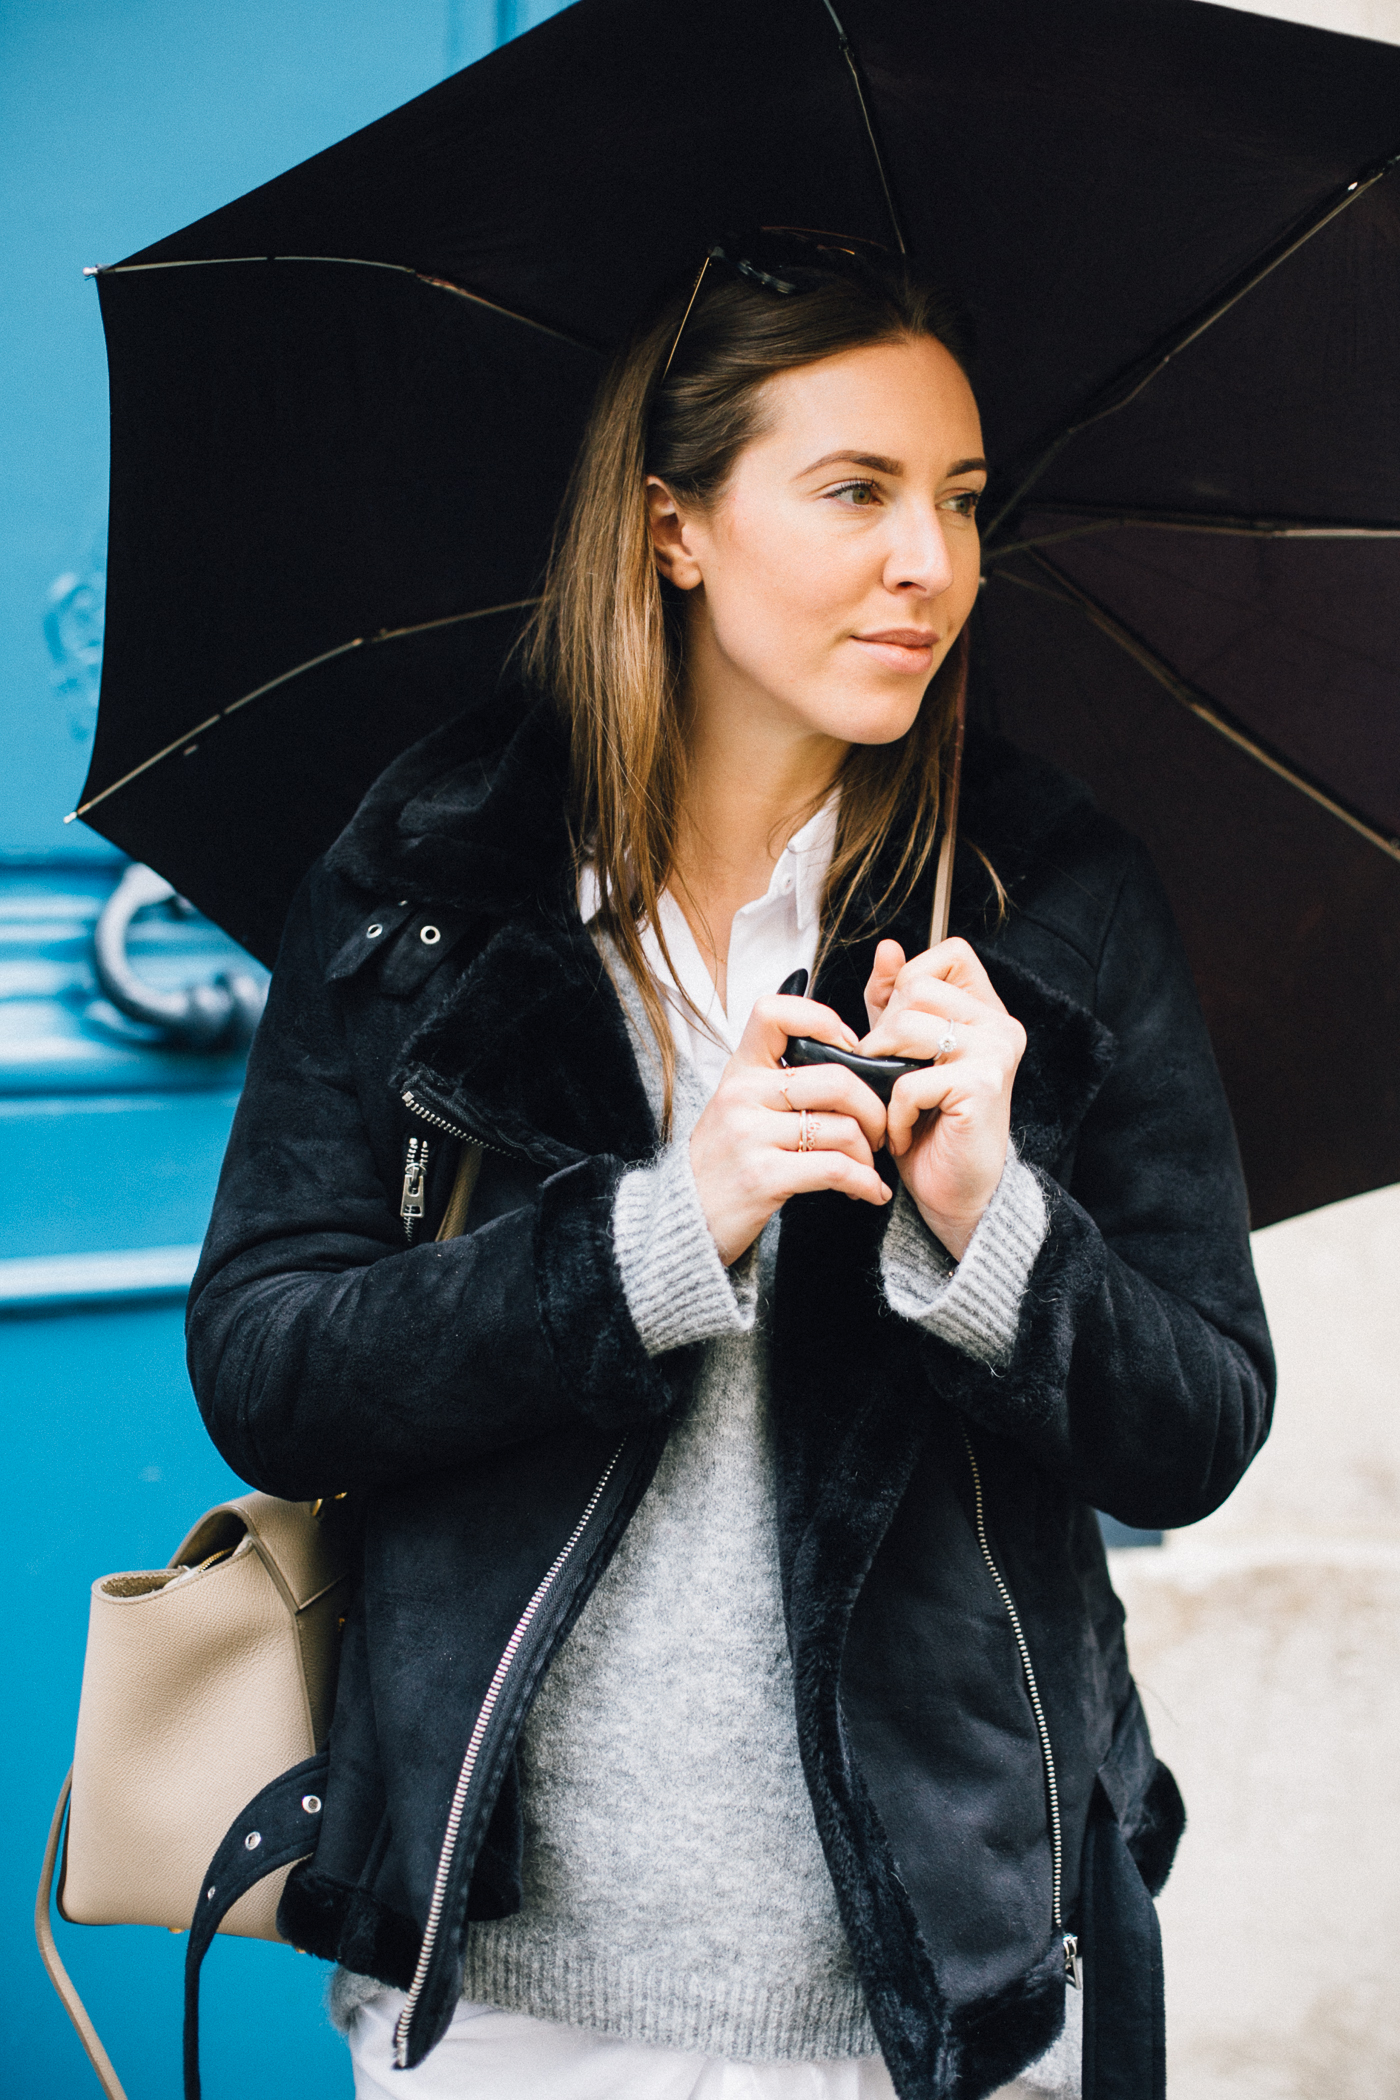 Rainy Days in Paris Outfit | Love Daily Dose